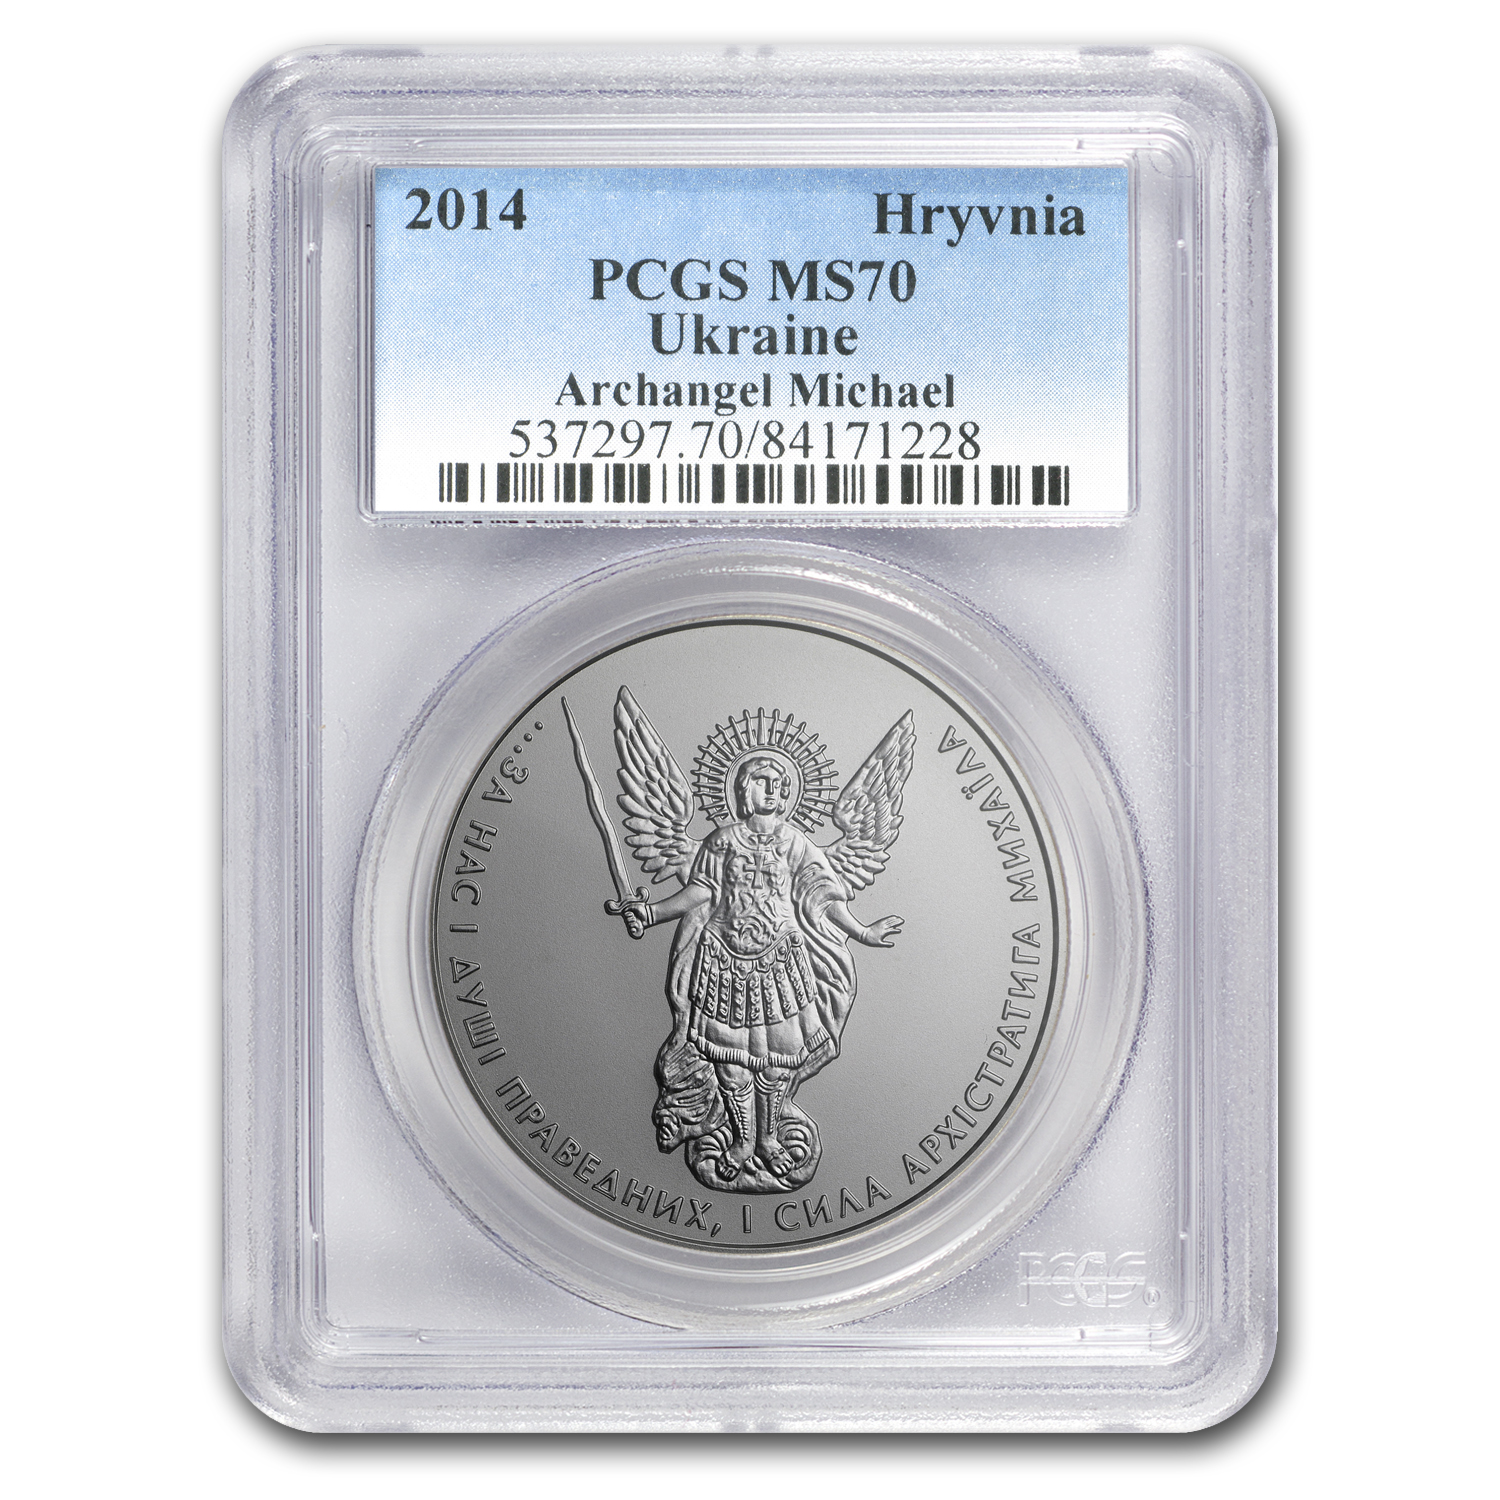 2014 Ukraine 1 oz Silver Archangel Michael MS-70 PCGS